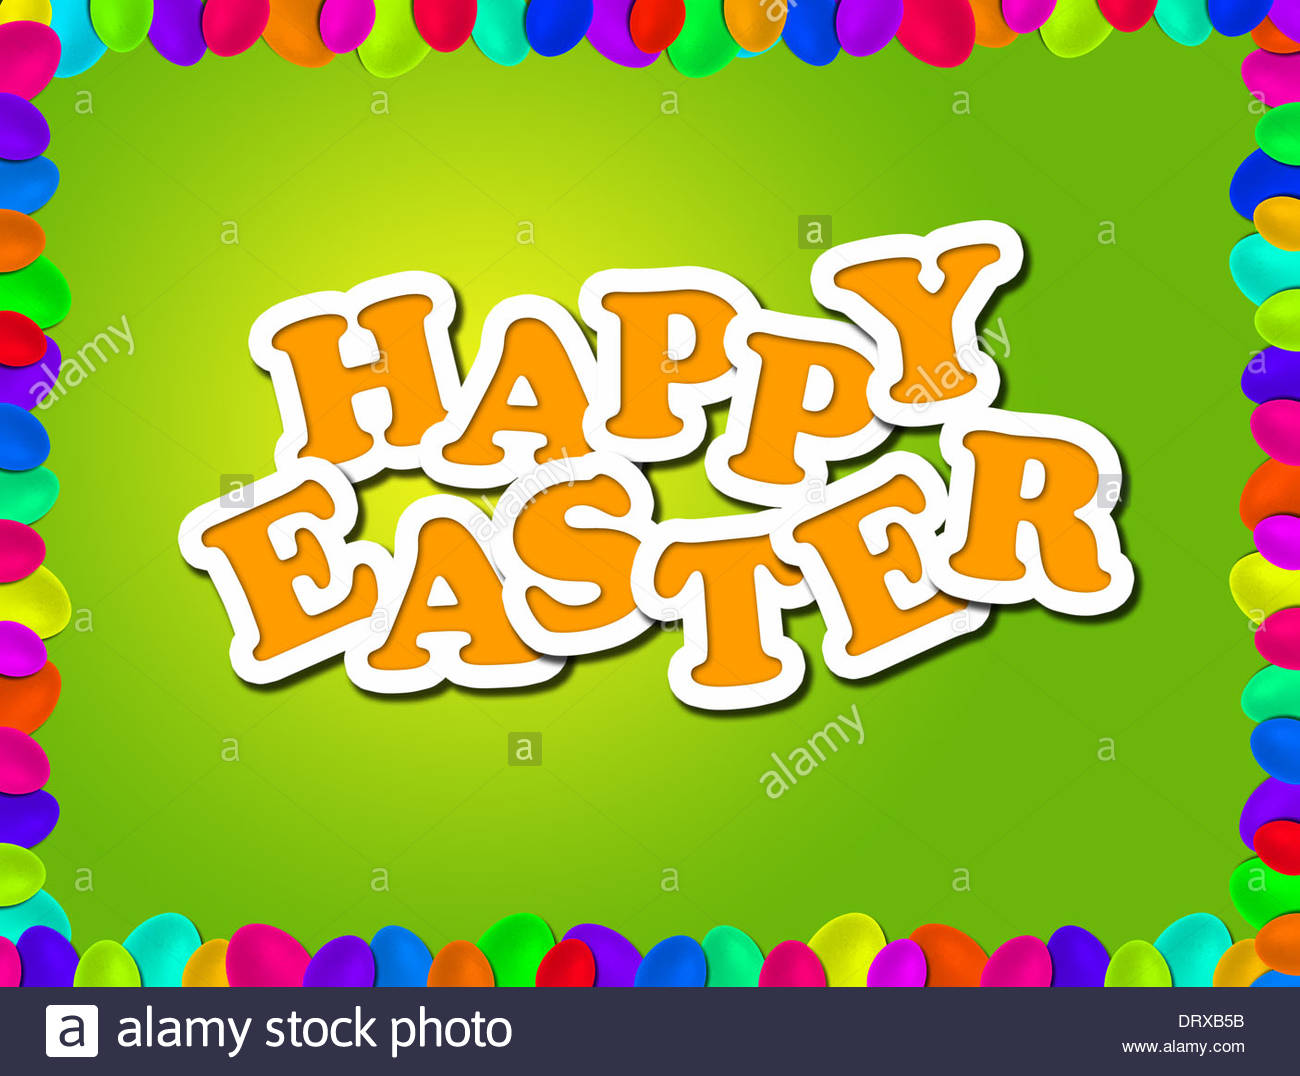 Happy Easter Greetings Stock Photos Happy Easter Greetings Stock